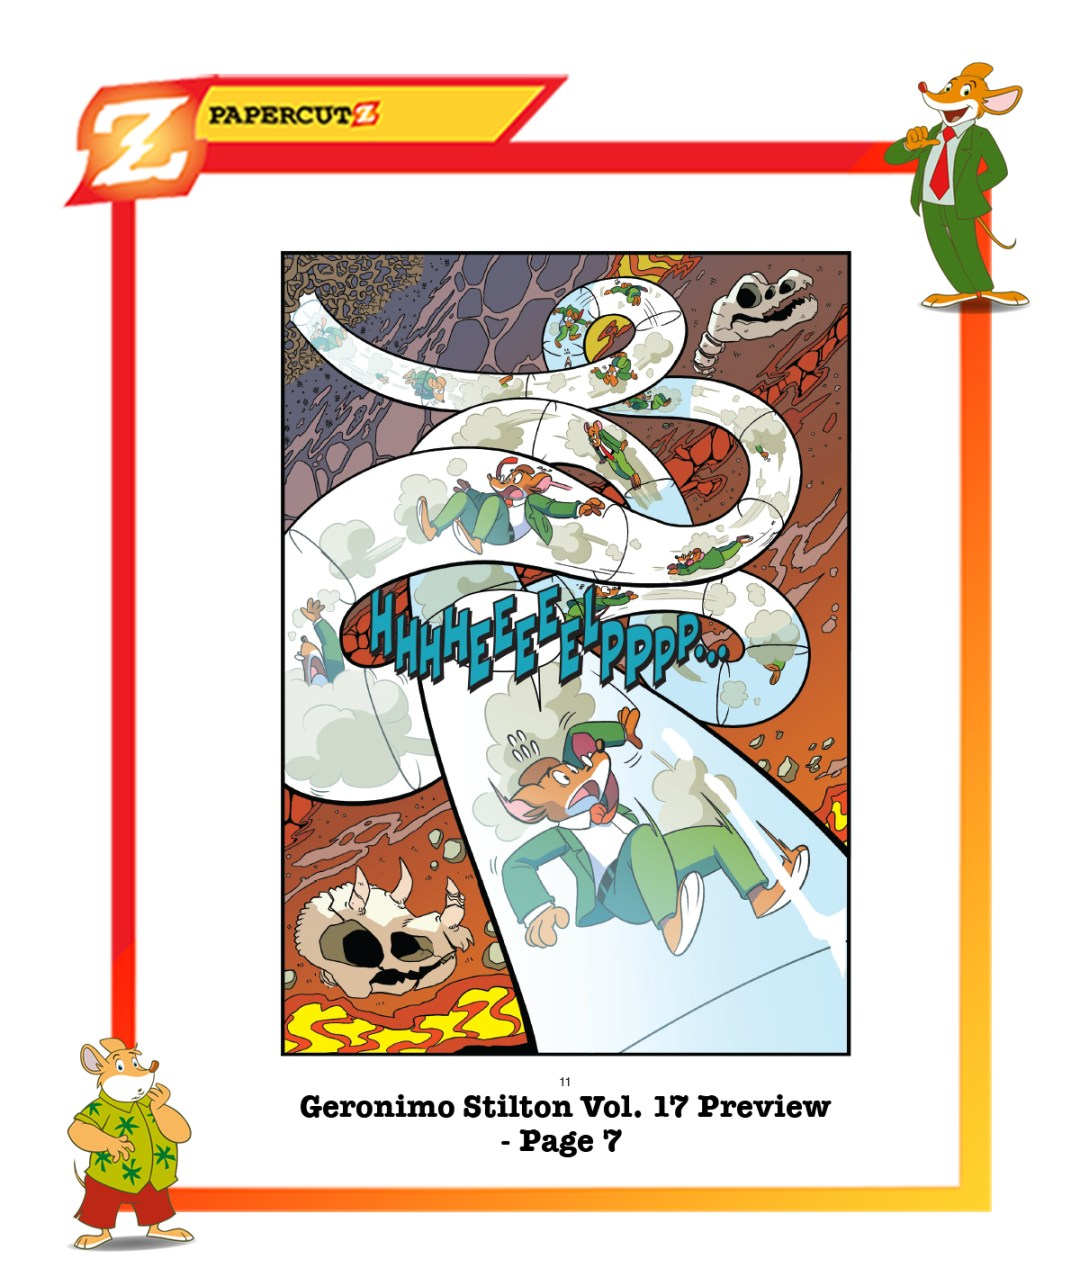 geronimo_stilton_017_preview_page07